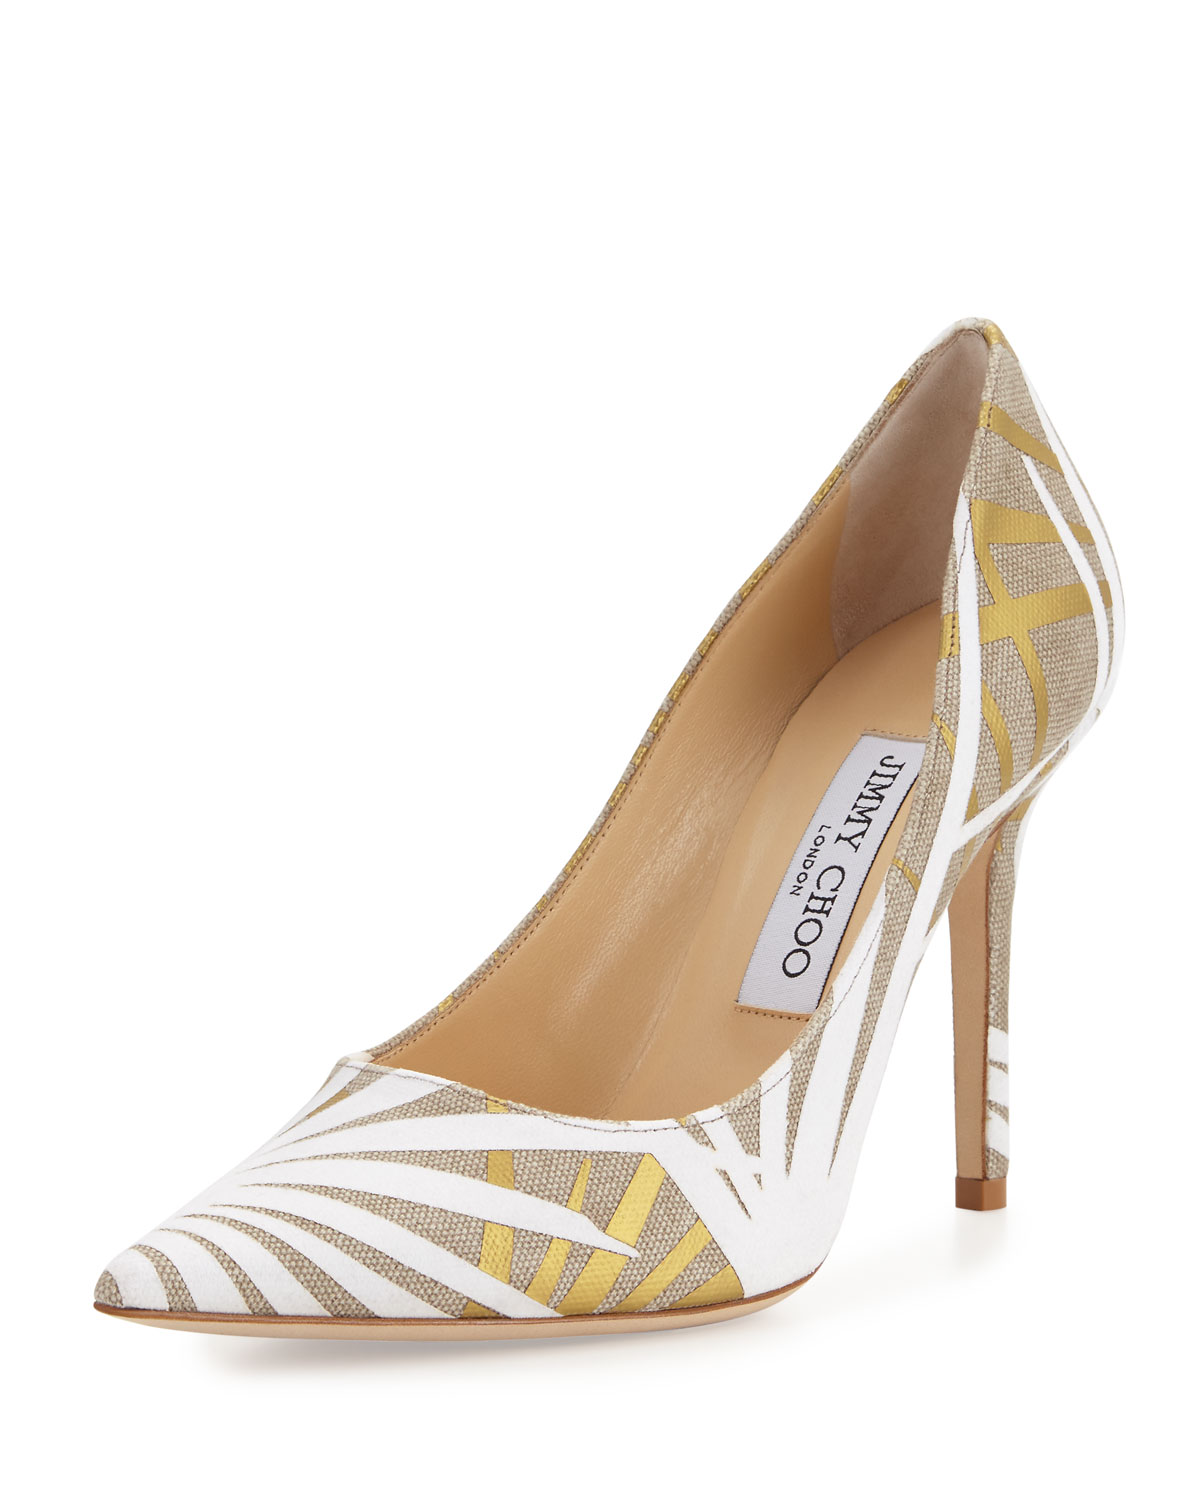 4634fdc90fc6 Jimmy Choo Abel Palm Pointed-Toe Pump